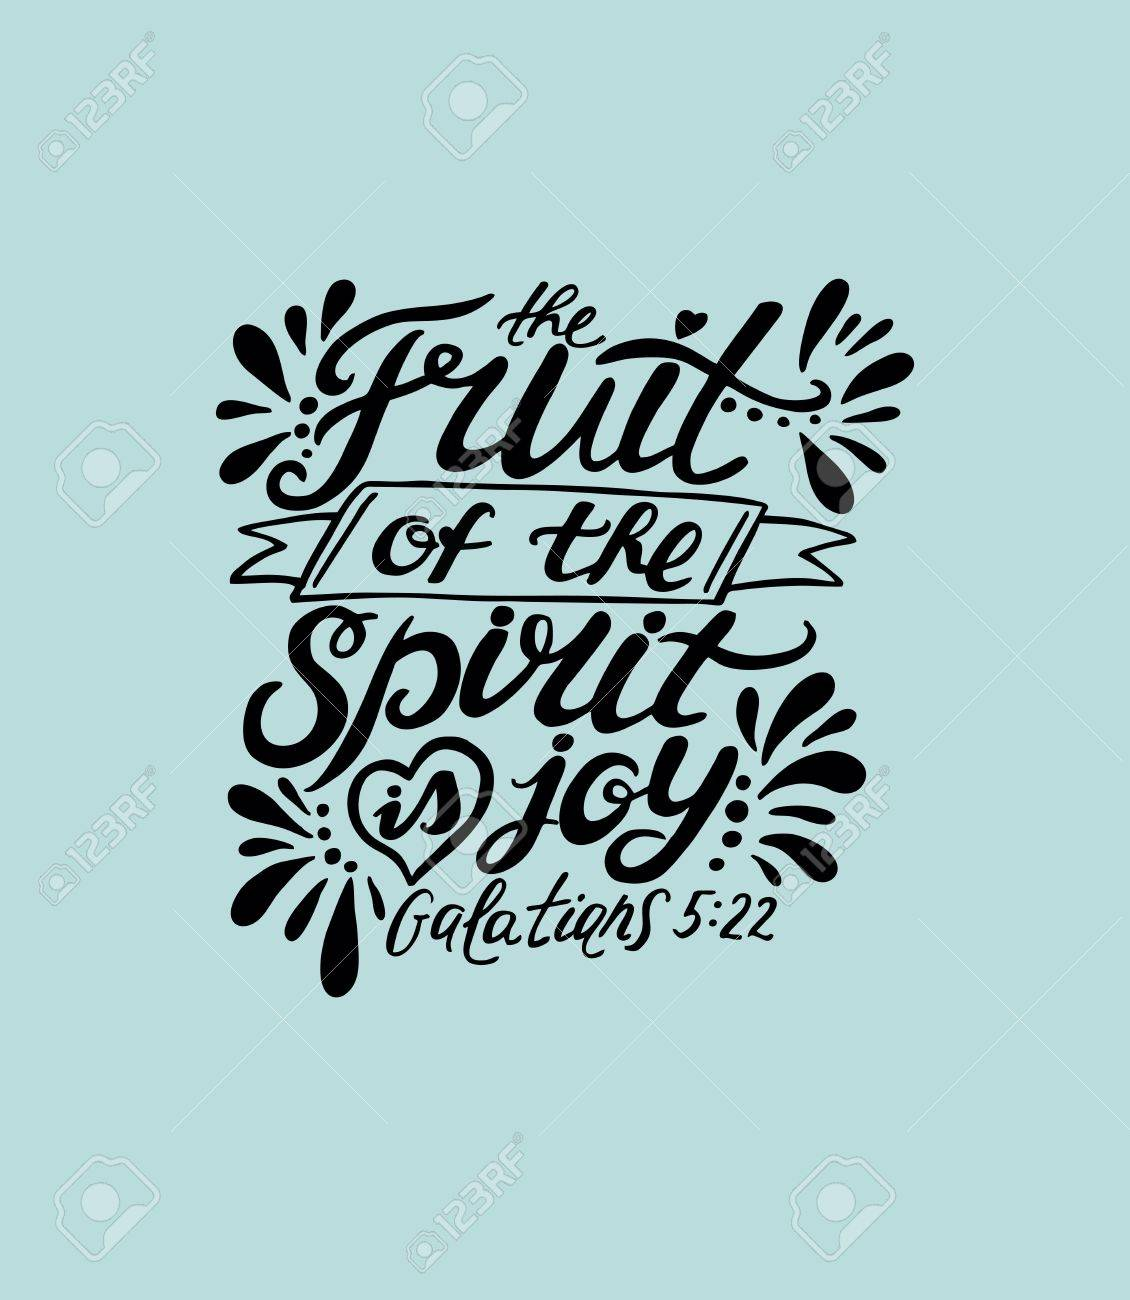 Fanciful New Testament Gala Bible Verse About Joyful Noise Bible Verse About Joy Comes Morning Spirit Is Joy Bible Verse Christian Poster 72898563 Hand Lettering Fruit inspiration Bible Verse About Joy